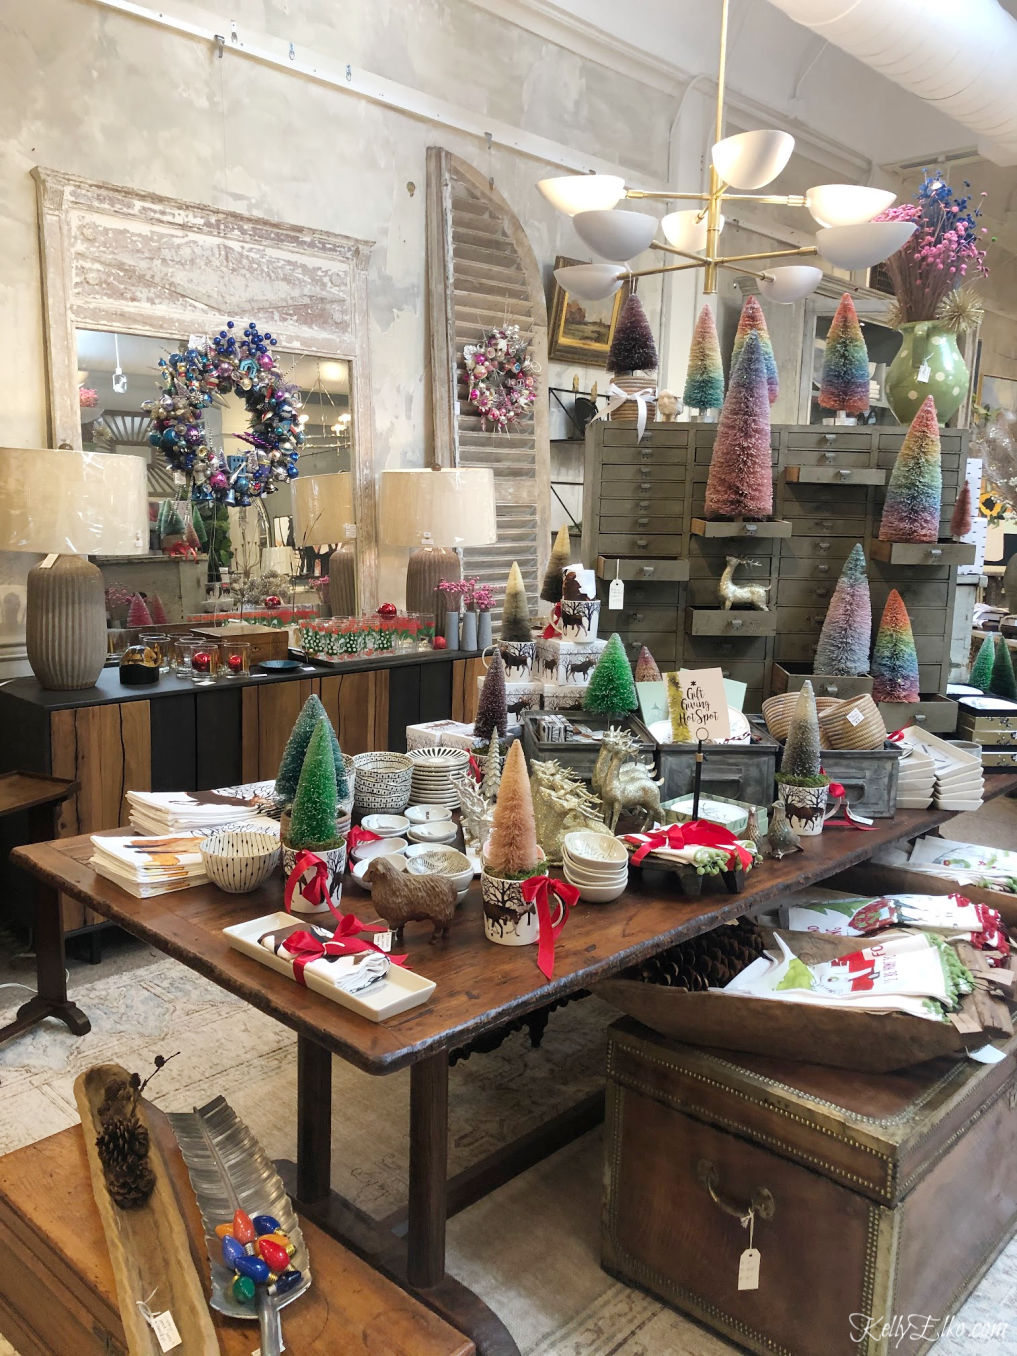 Get creative Christmas decorating ideas from local shops - love the bottle brush trees and vintage ornament wreaths kellyelko.com #christmasdecor #christmasdecoratingideas #vintagechristmas #christmastrees